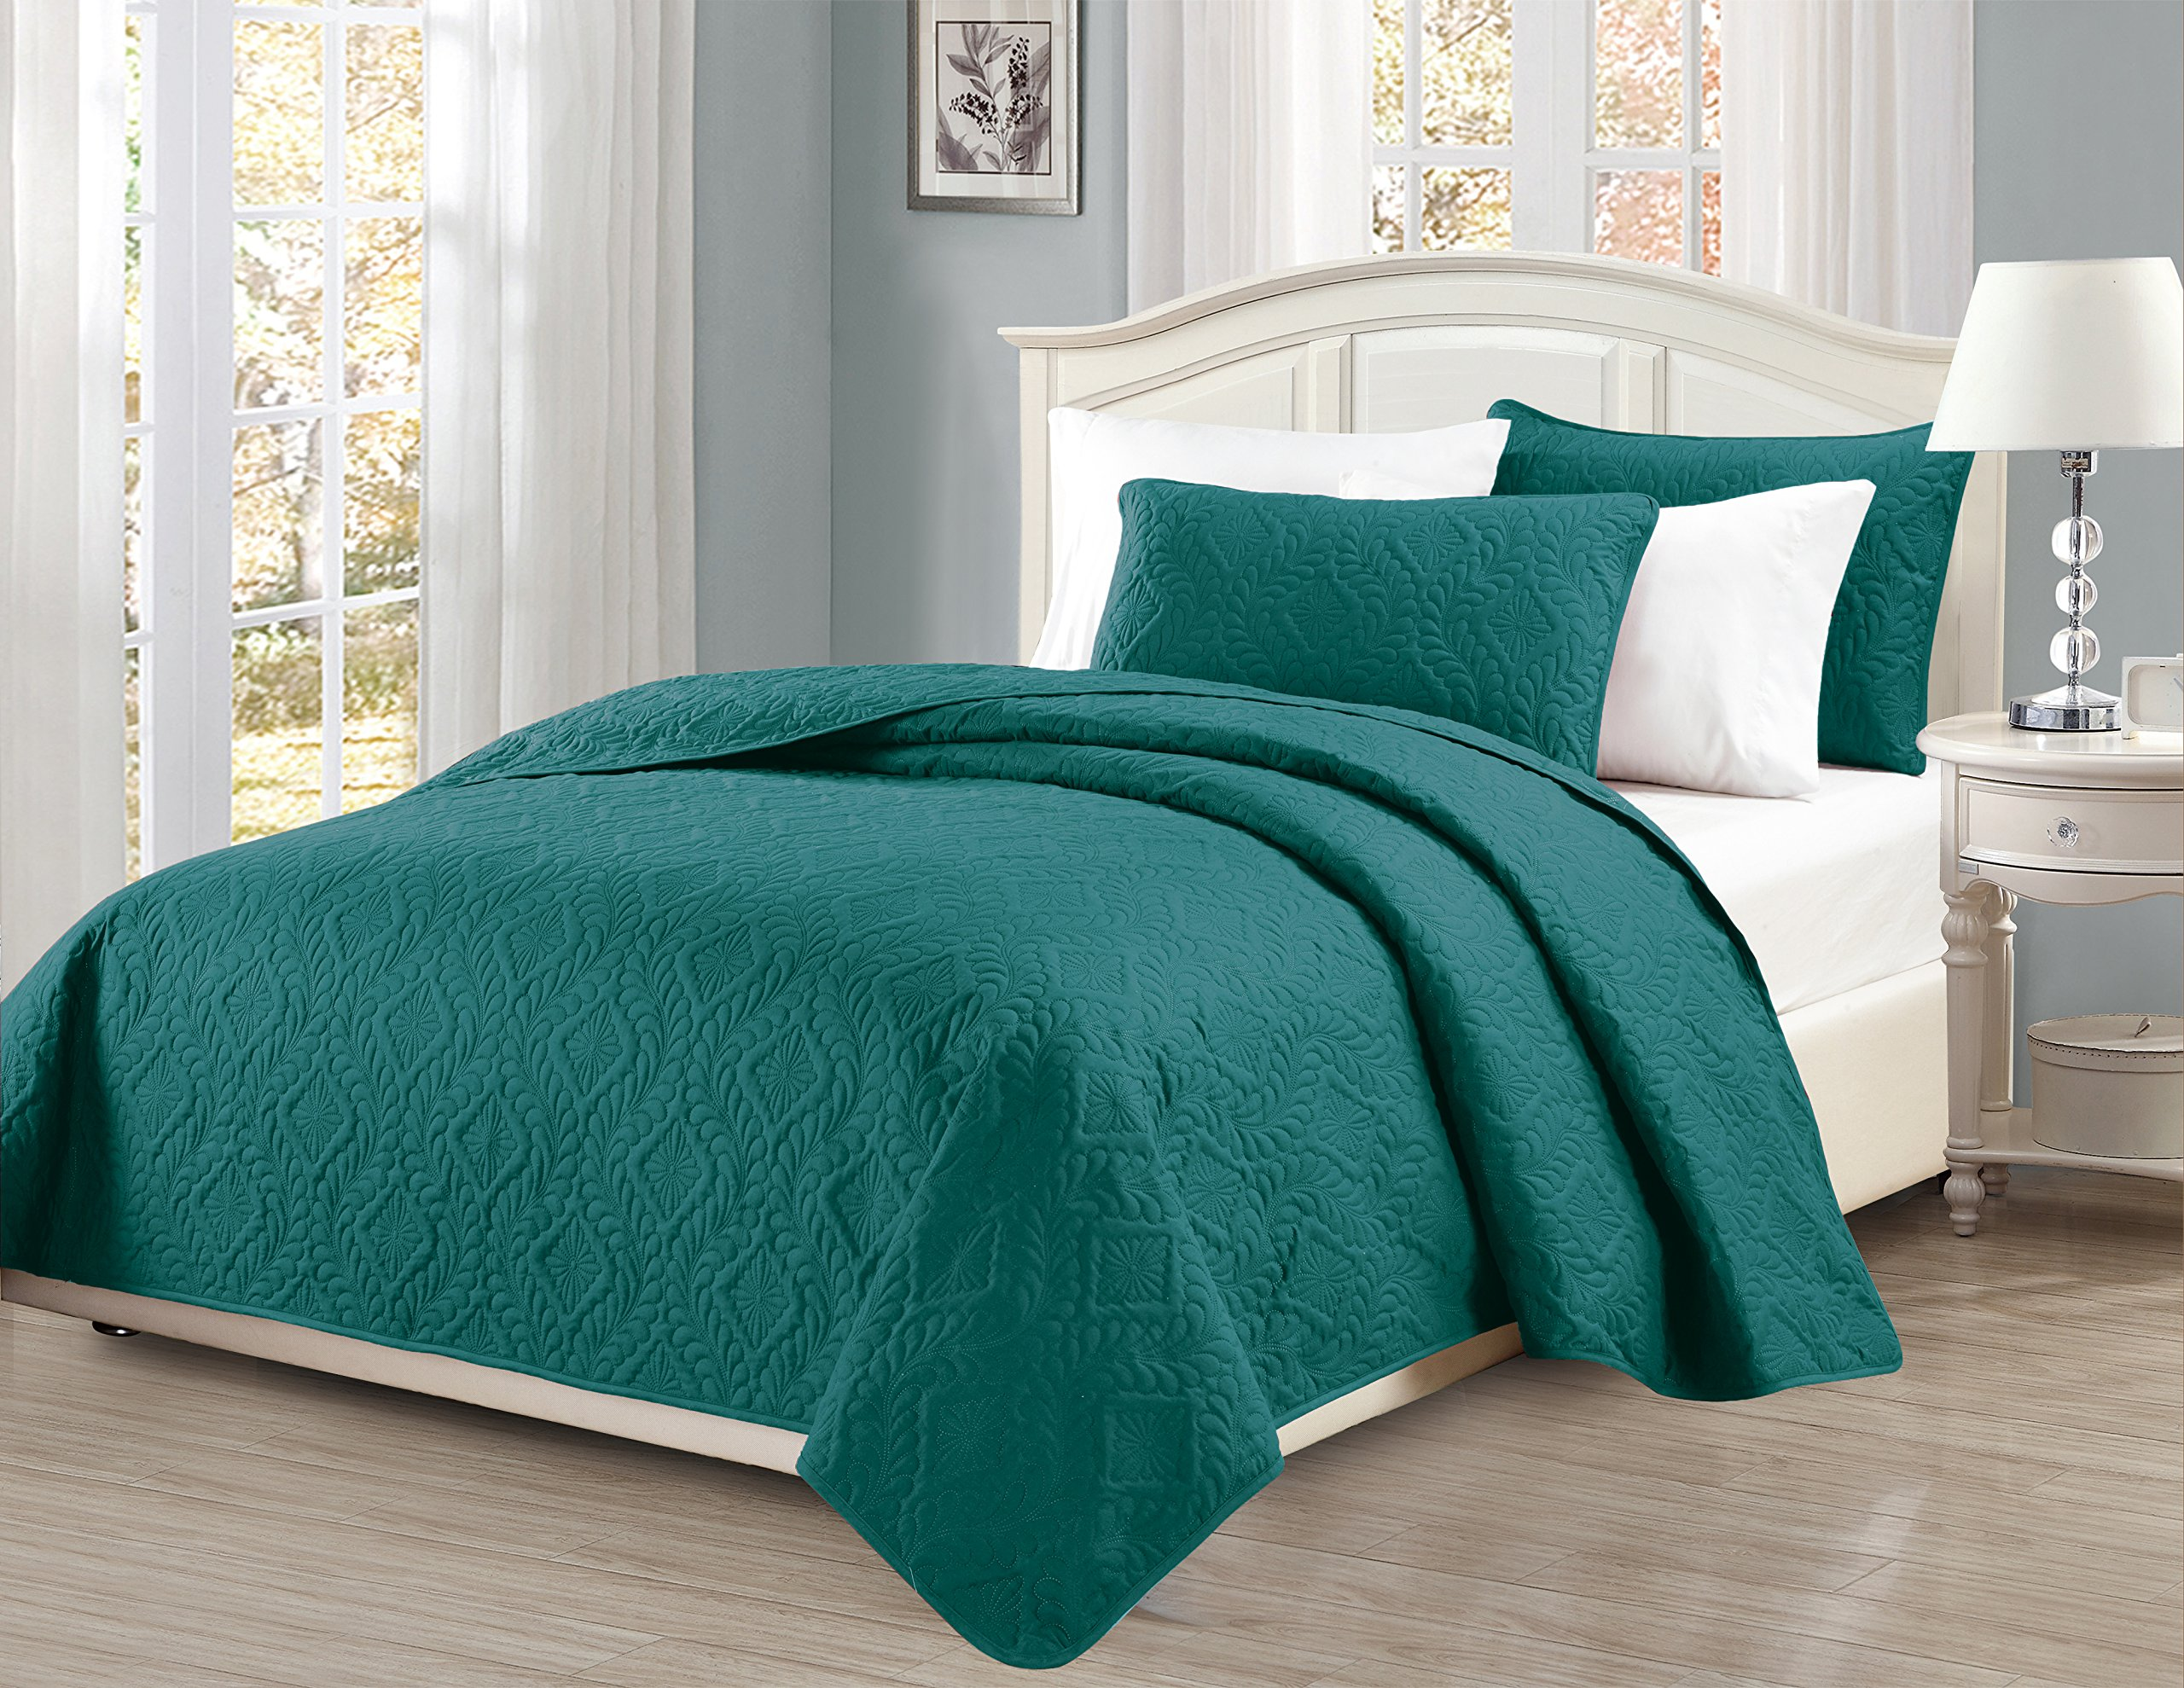 Fancy Collection 3pc King/California King Oversize Bedspread Coverlet Set Embossed Solid Turquoise New